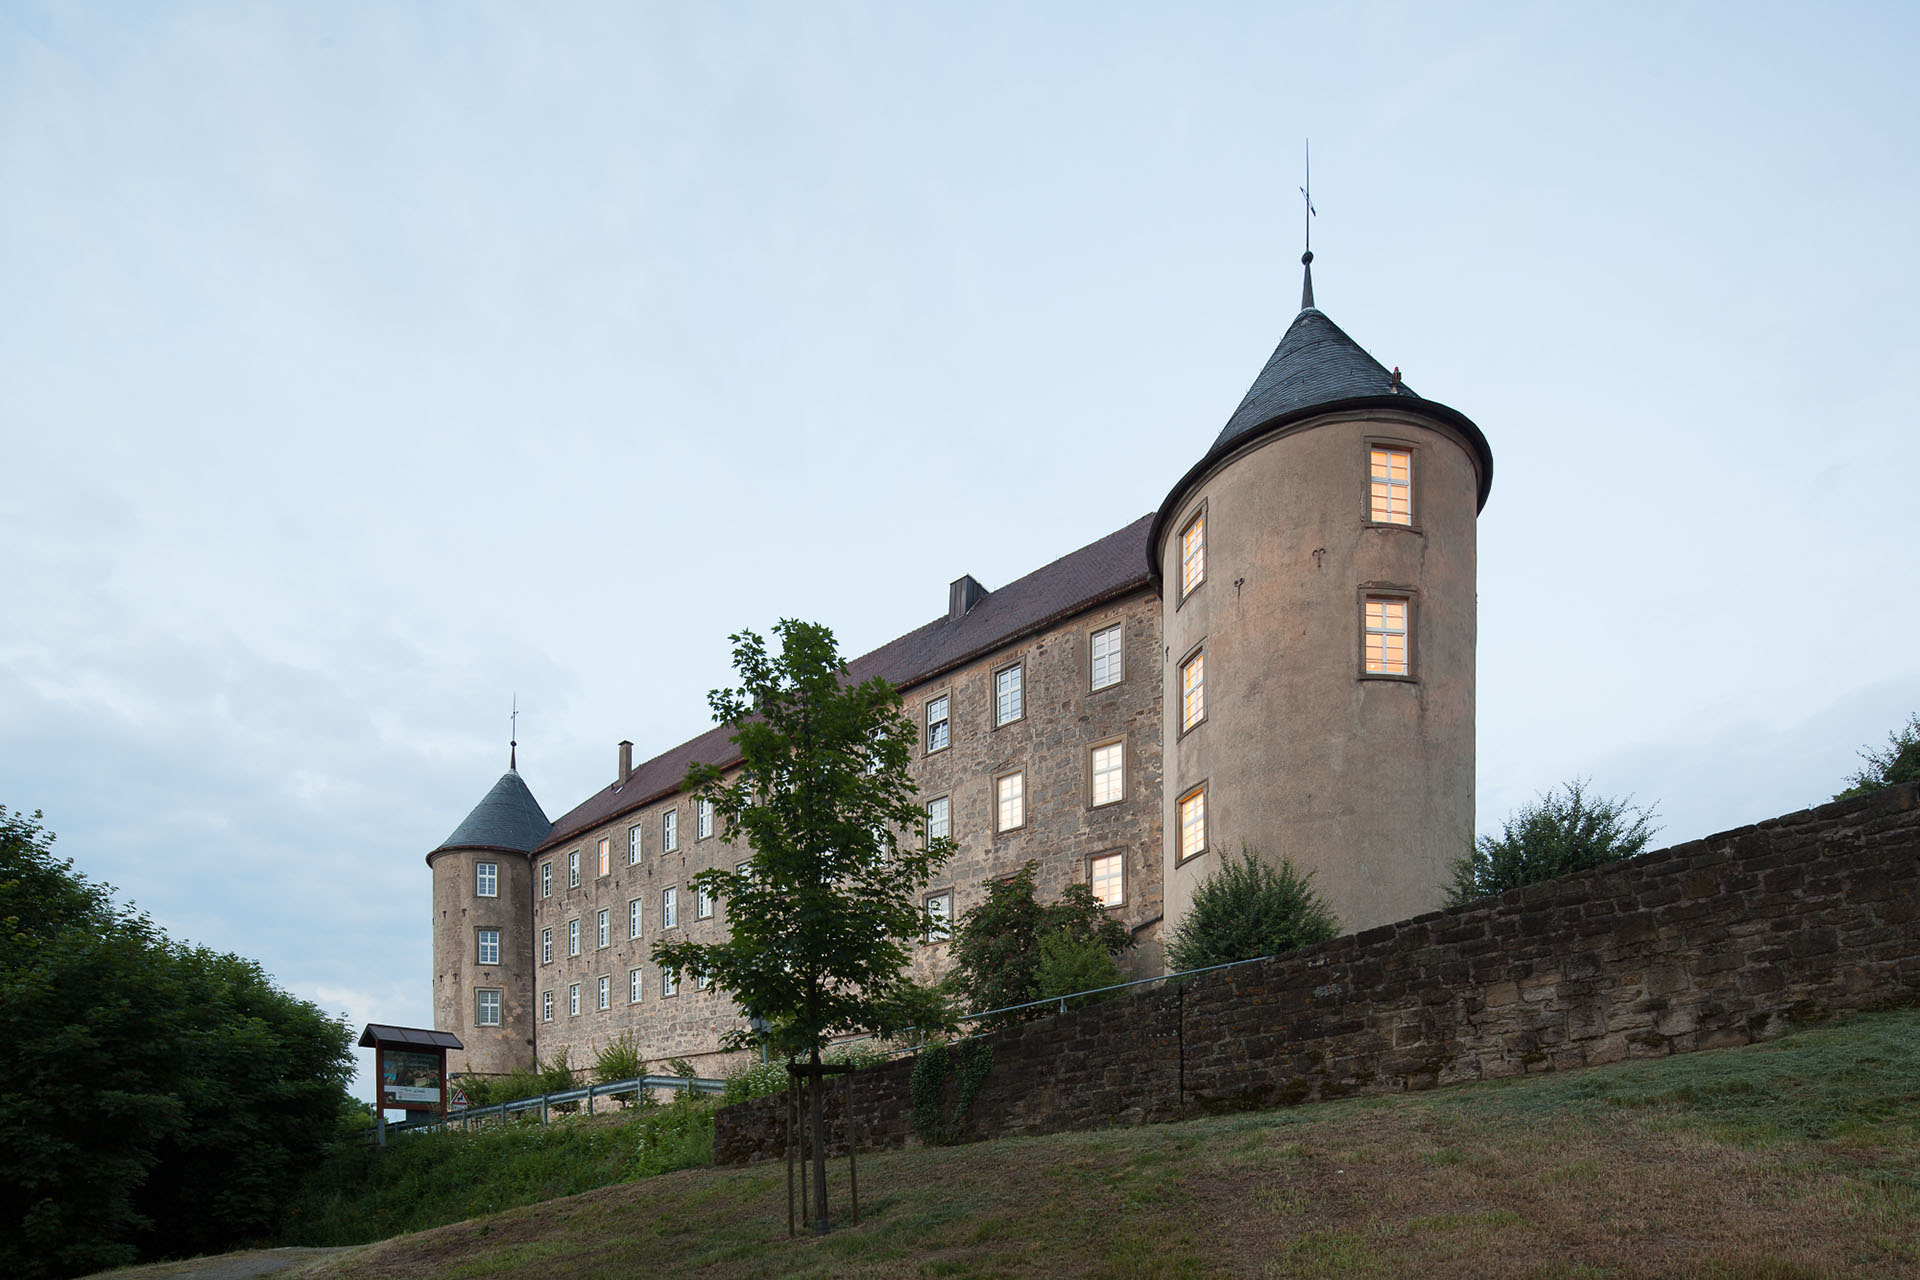 german-property - the picture shows the headquarters of the company german-property, the castle of Waldenburg in Germany